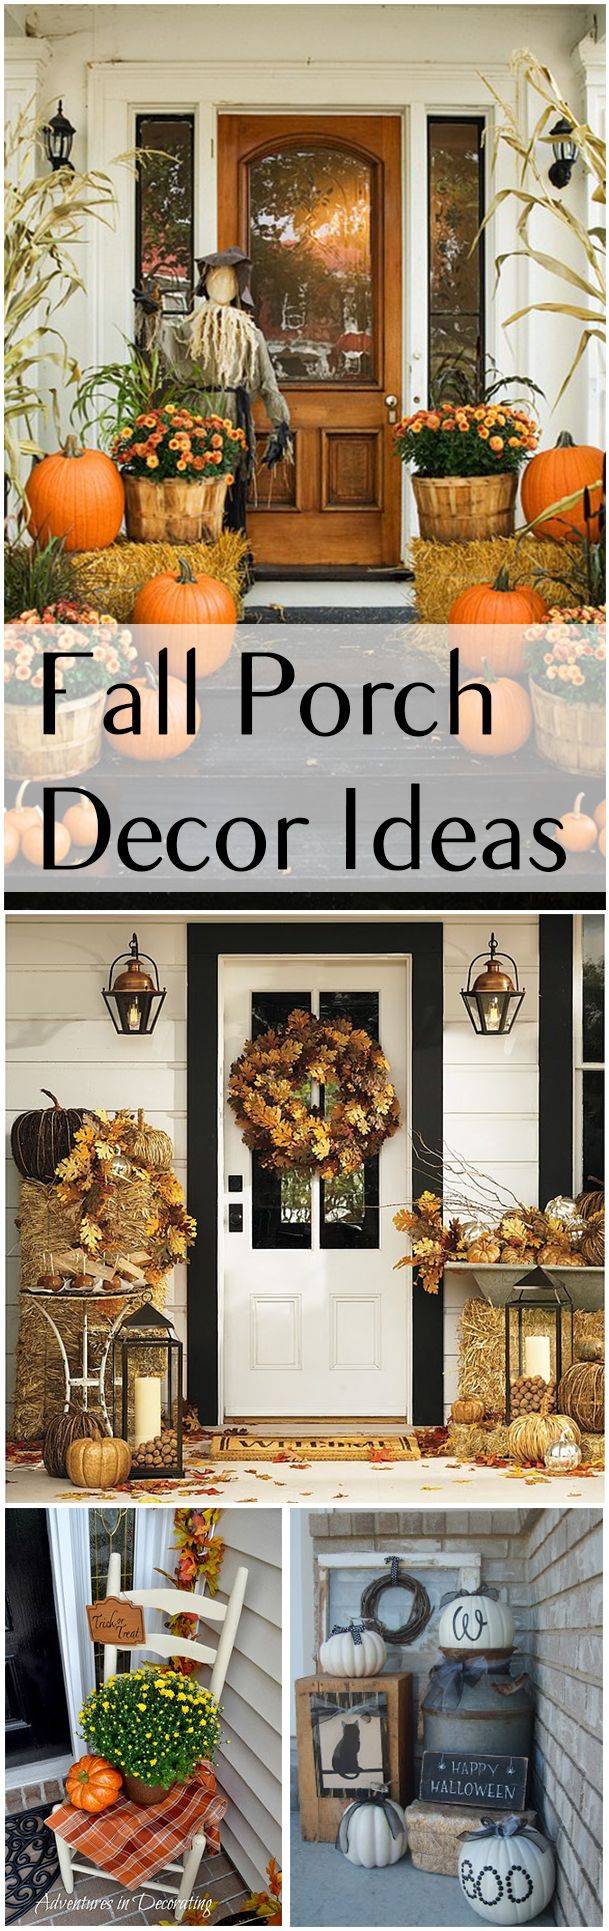 Superbe Fall Porch Decor Ideas